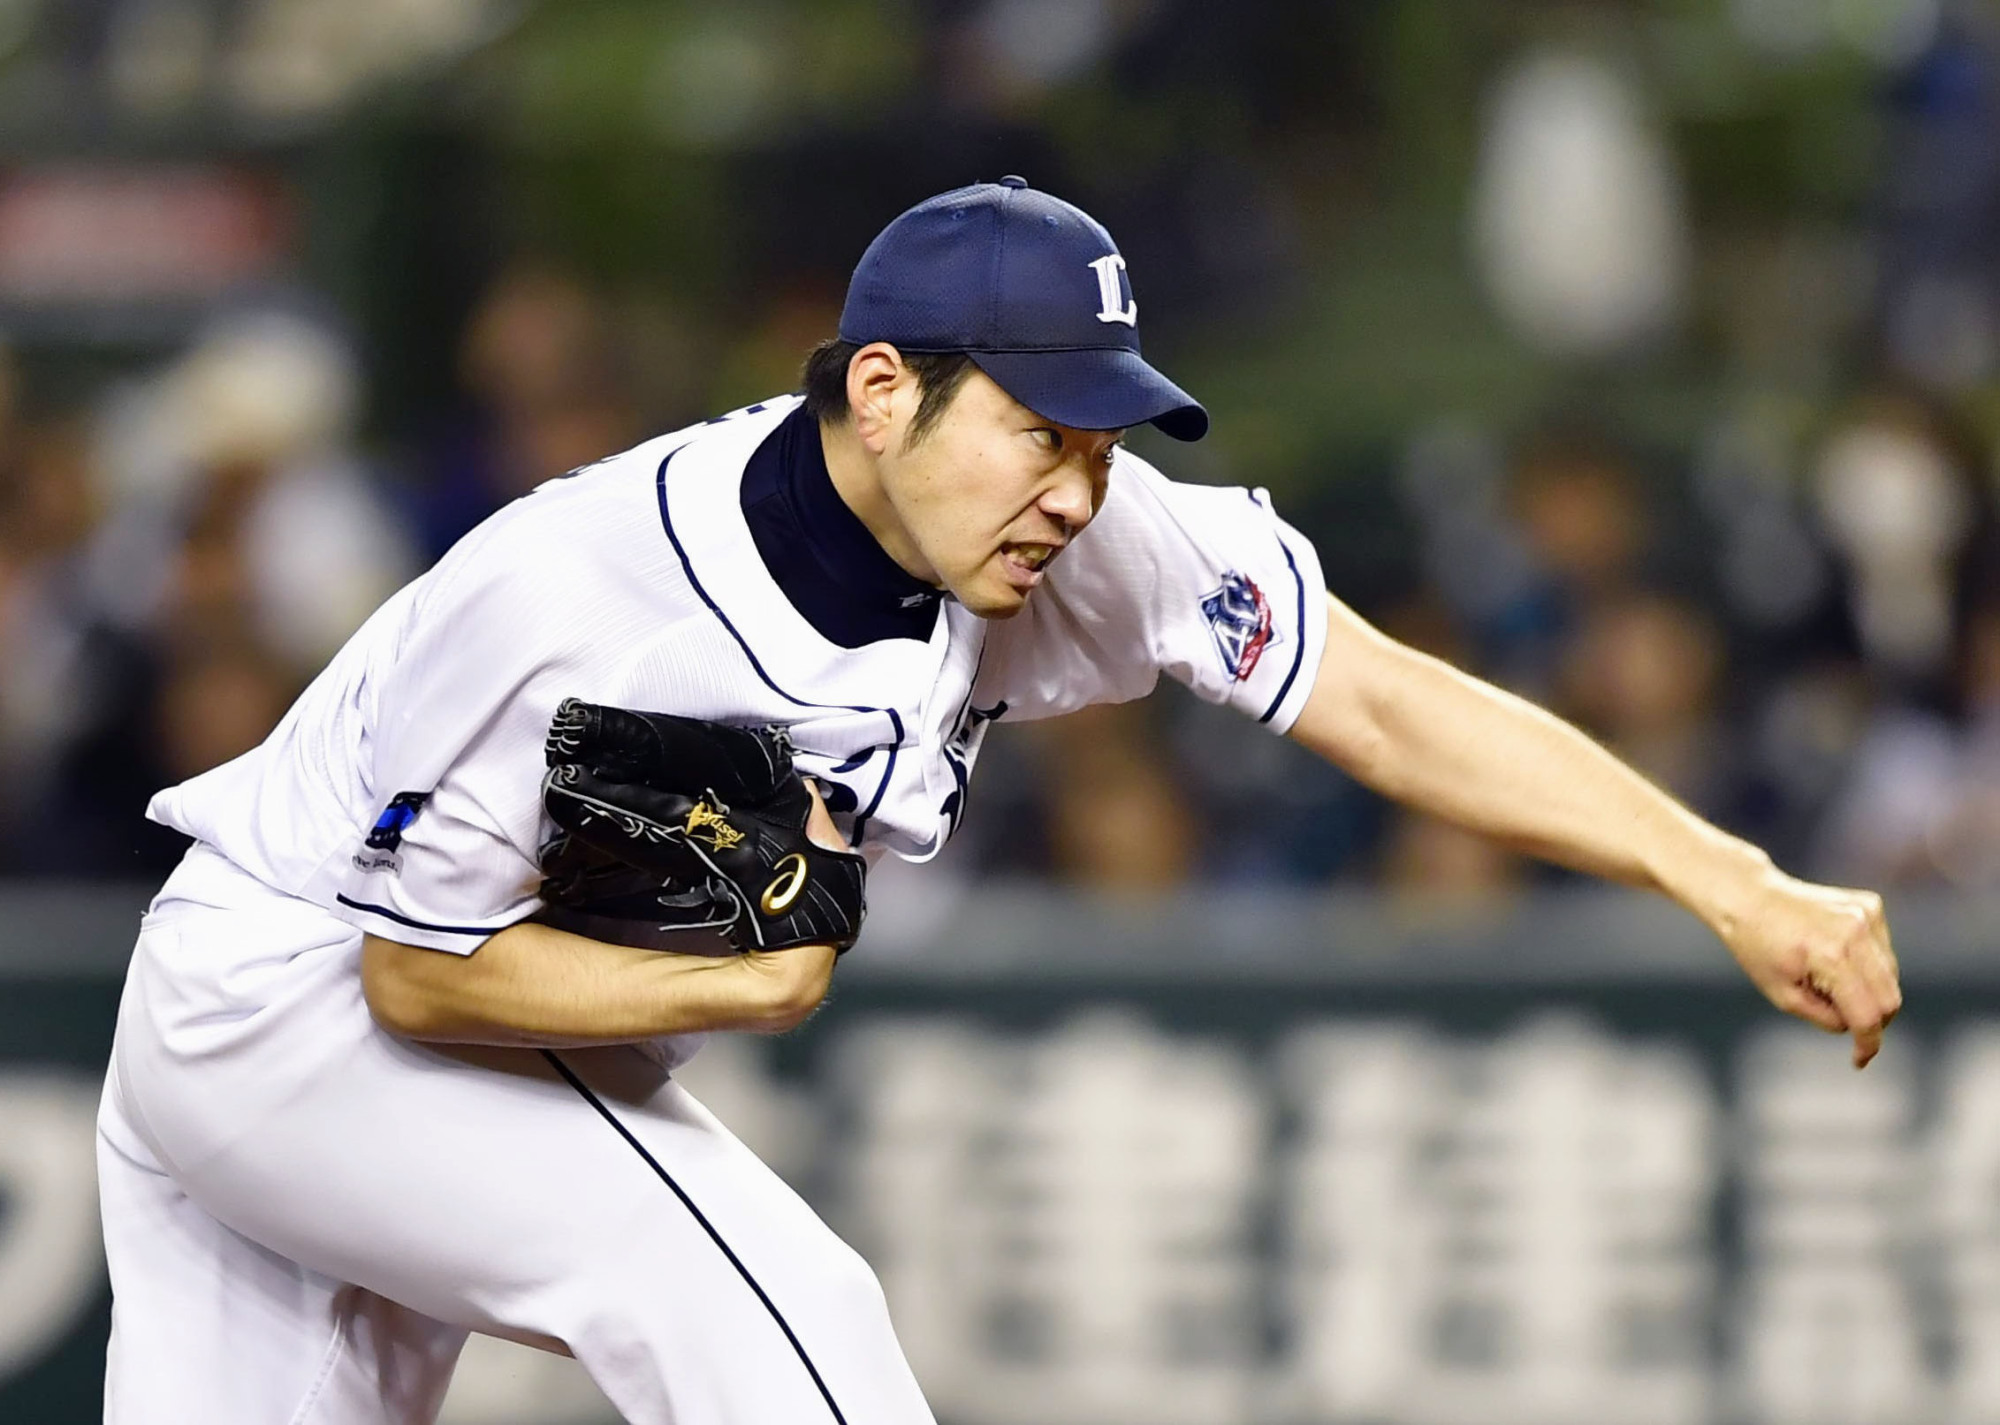 Pitcher Yusei Kikuchi has until Jan. 2 to sign with an MLB club or he will have to return to the Seibu Lions for the 2019 season. | KYODO